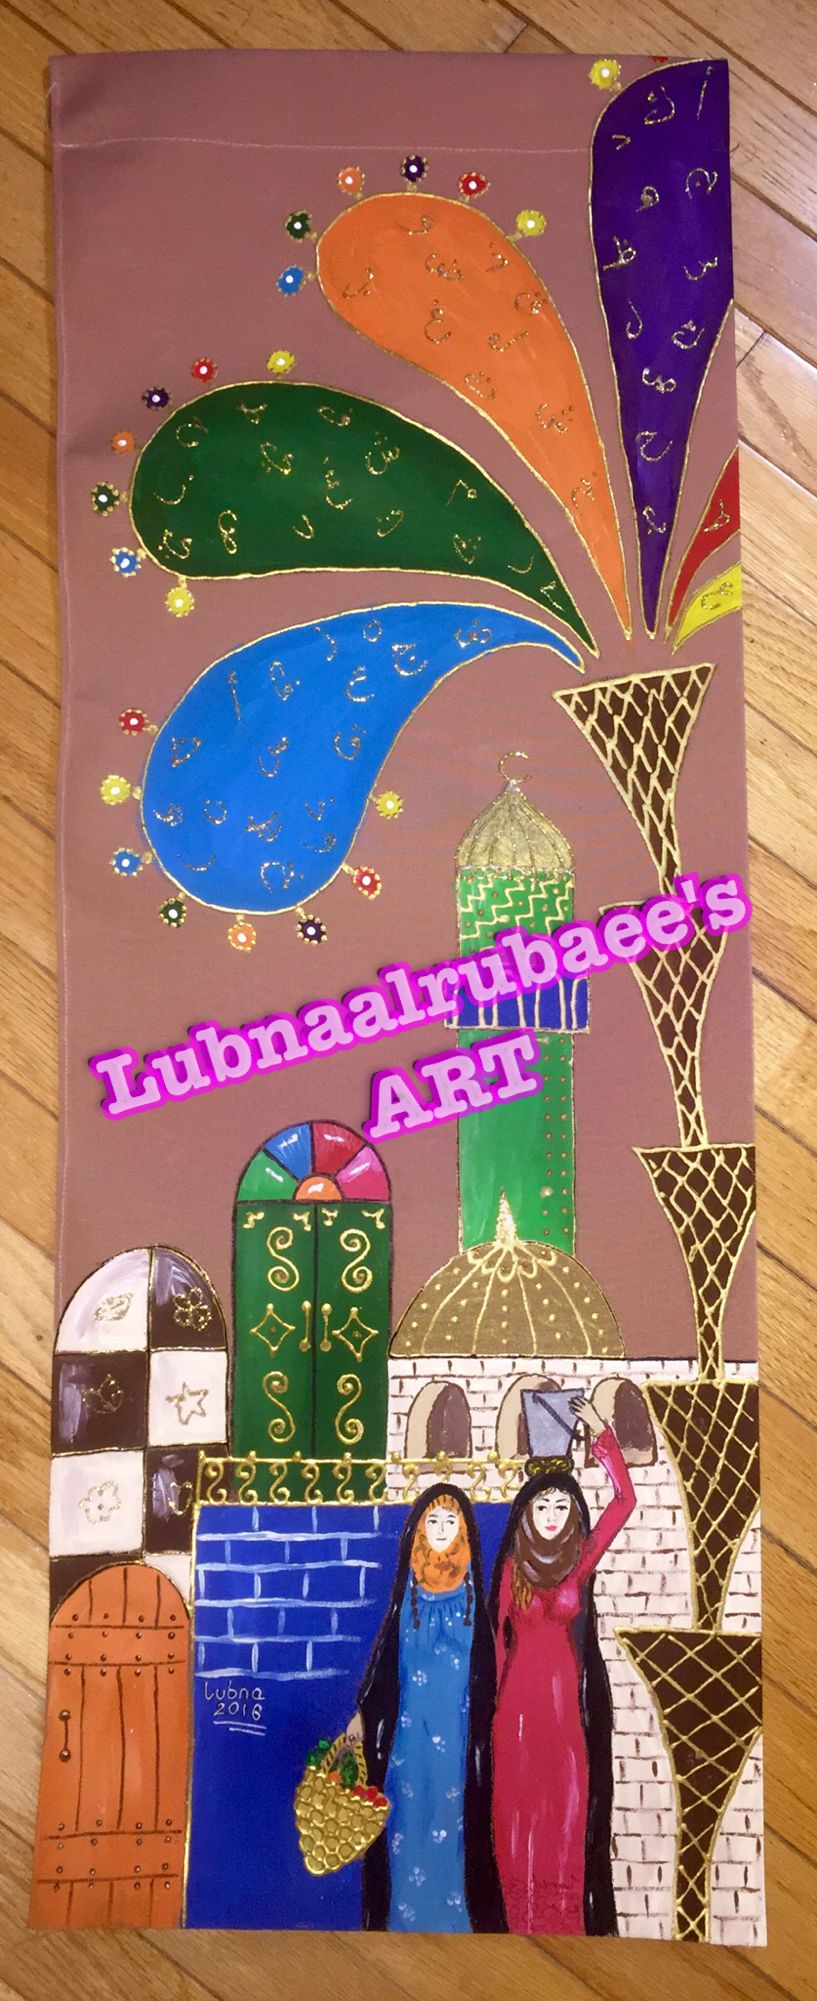 رسم على القماش شناشيل بغداديه Lubnaalrubaee Sart Iraqi Artist Leather Art Islamic Art Harry Potter Art